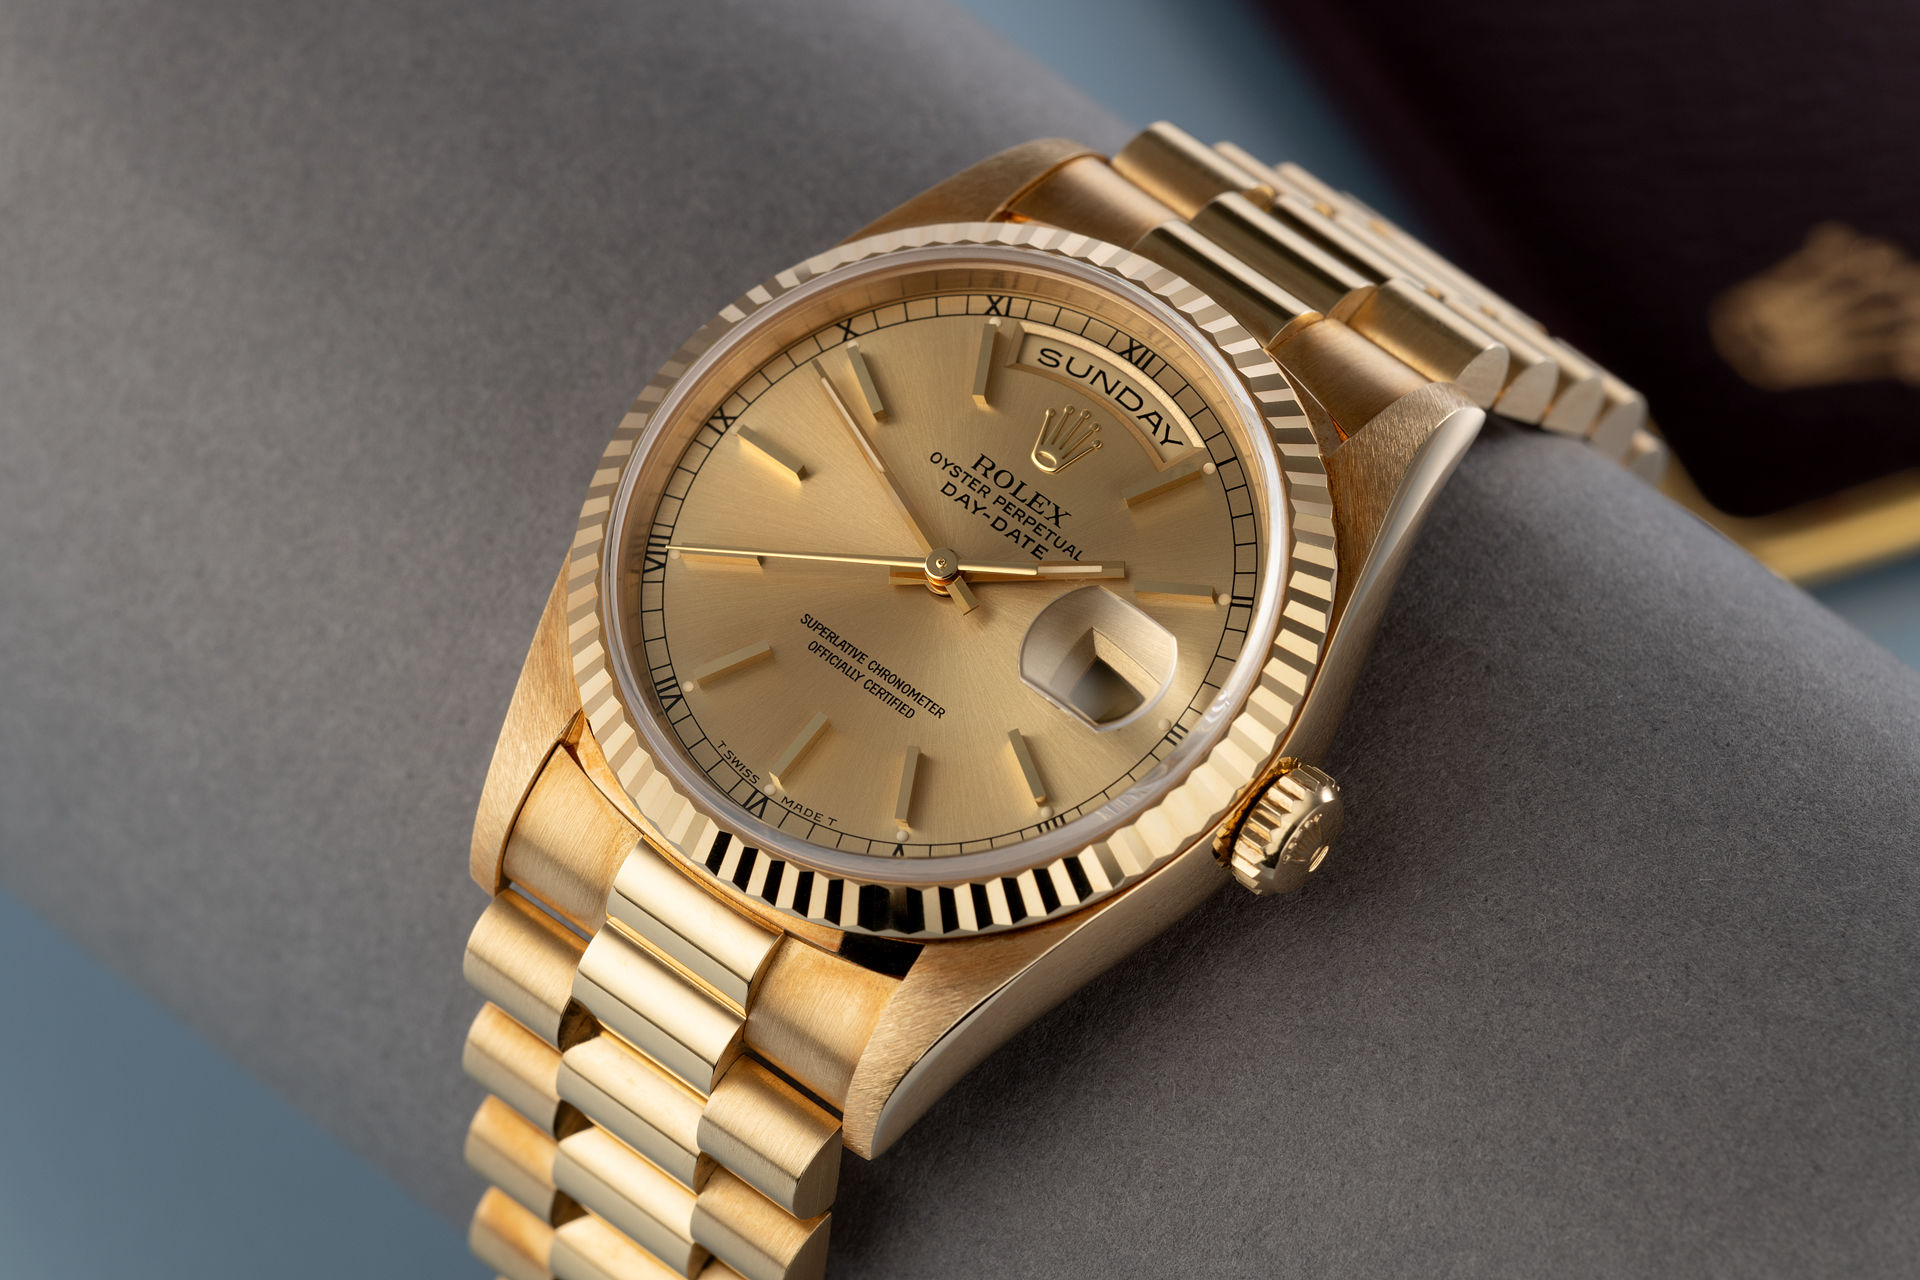 Rolex Day-Date Watches | ref 18238 | 'Never Polished' Box & Papers ...